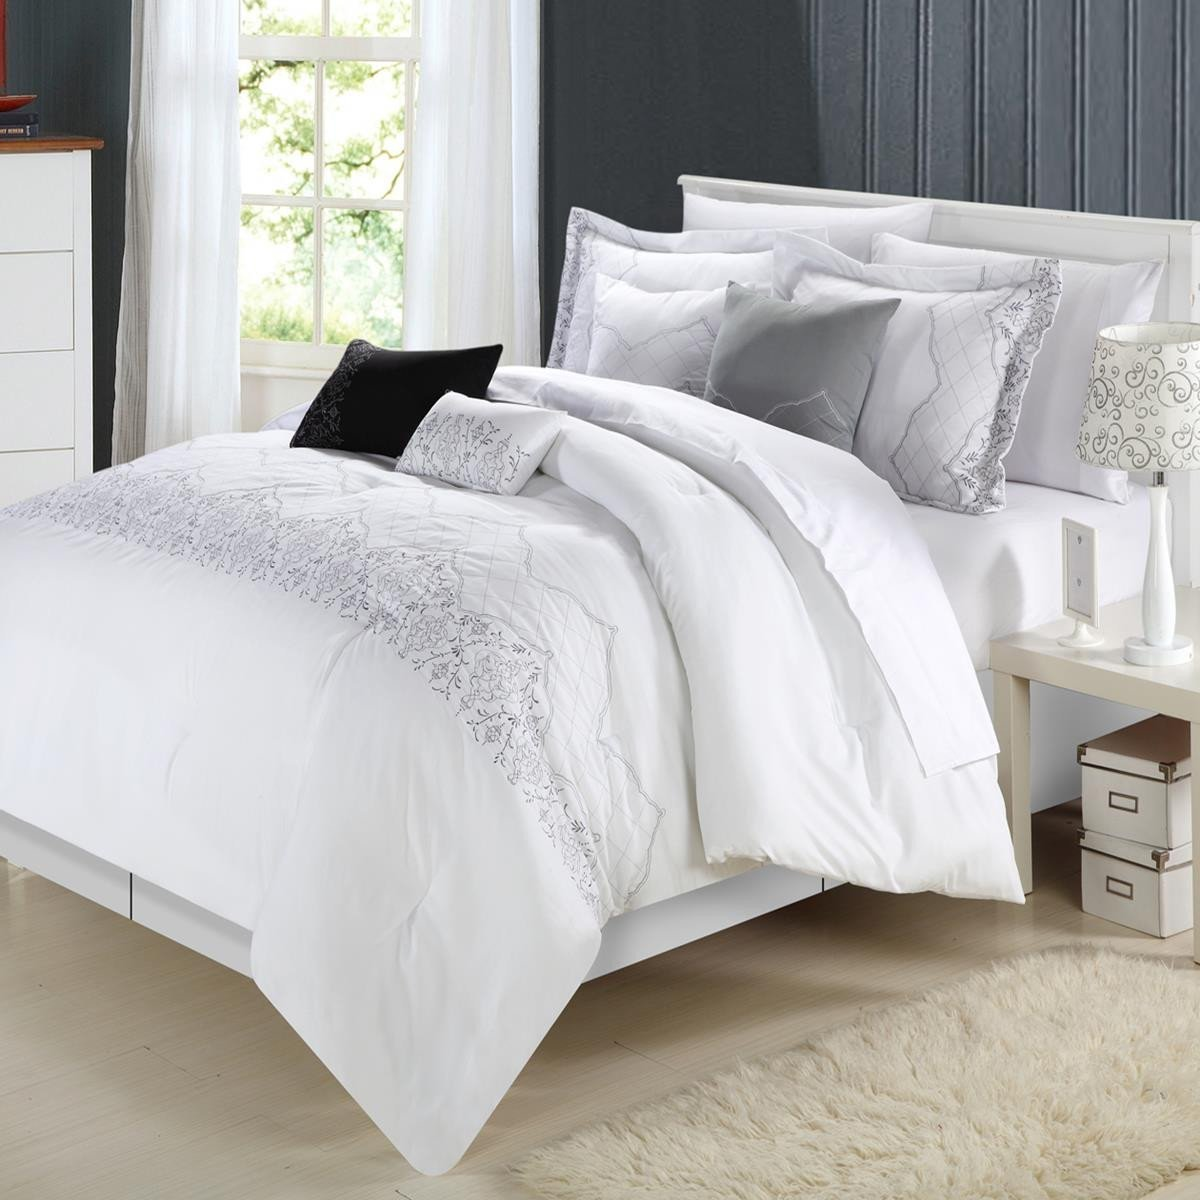 Best White Bedding Sets Queen Ease Bedding With Style